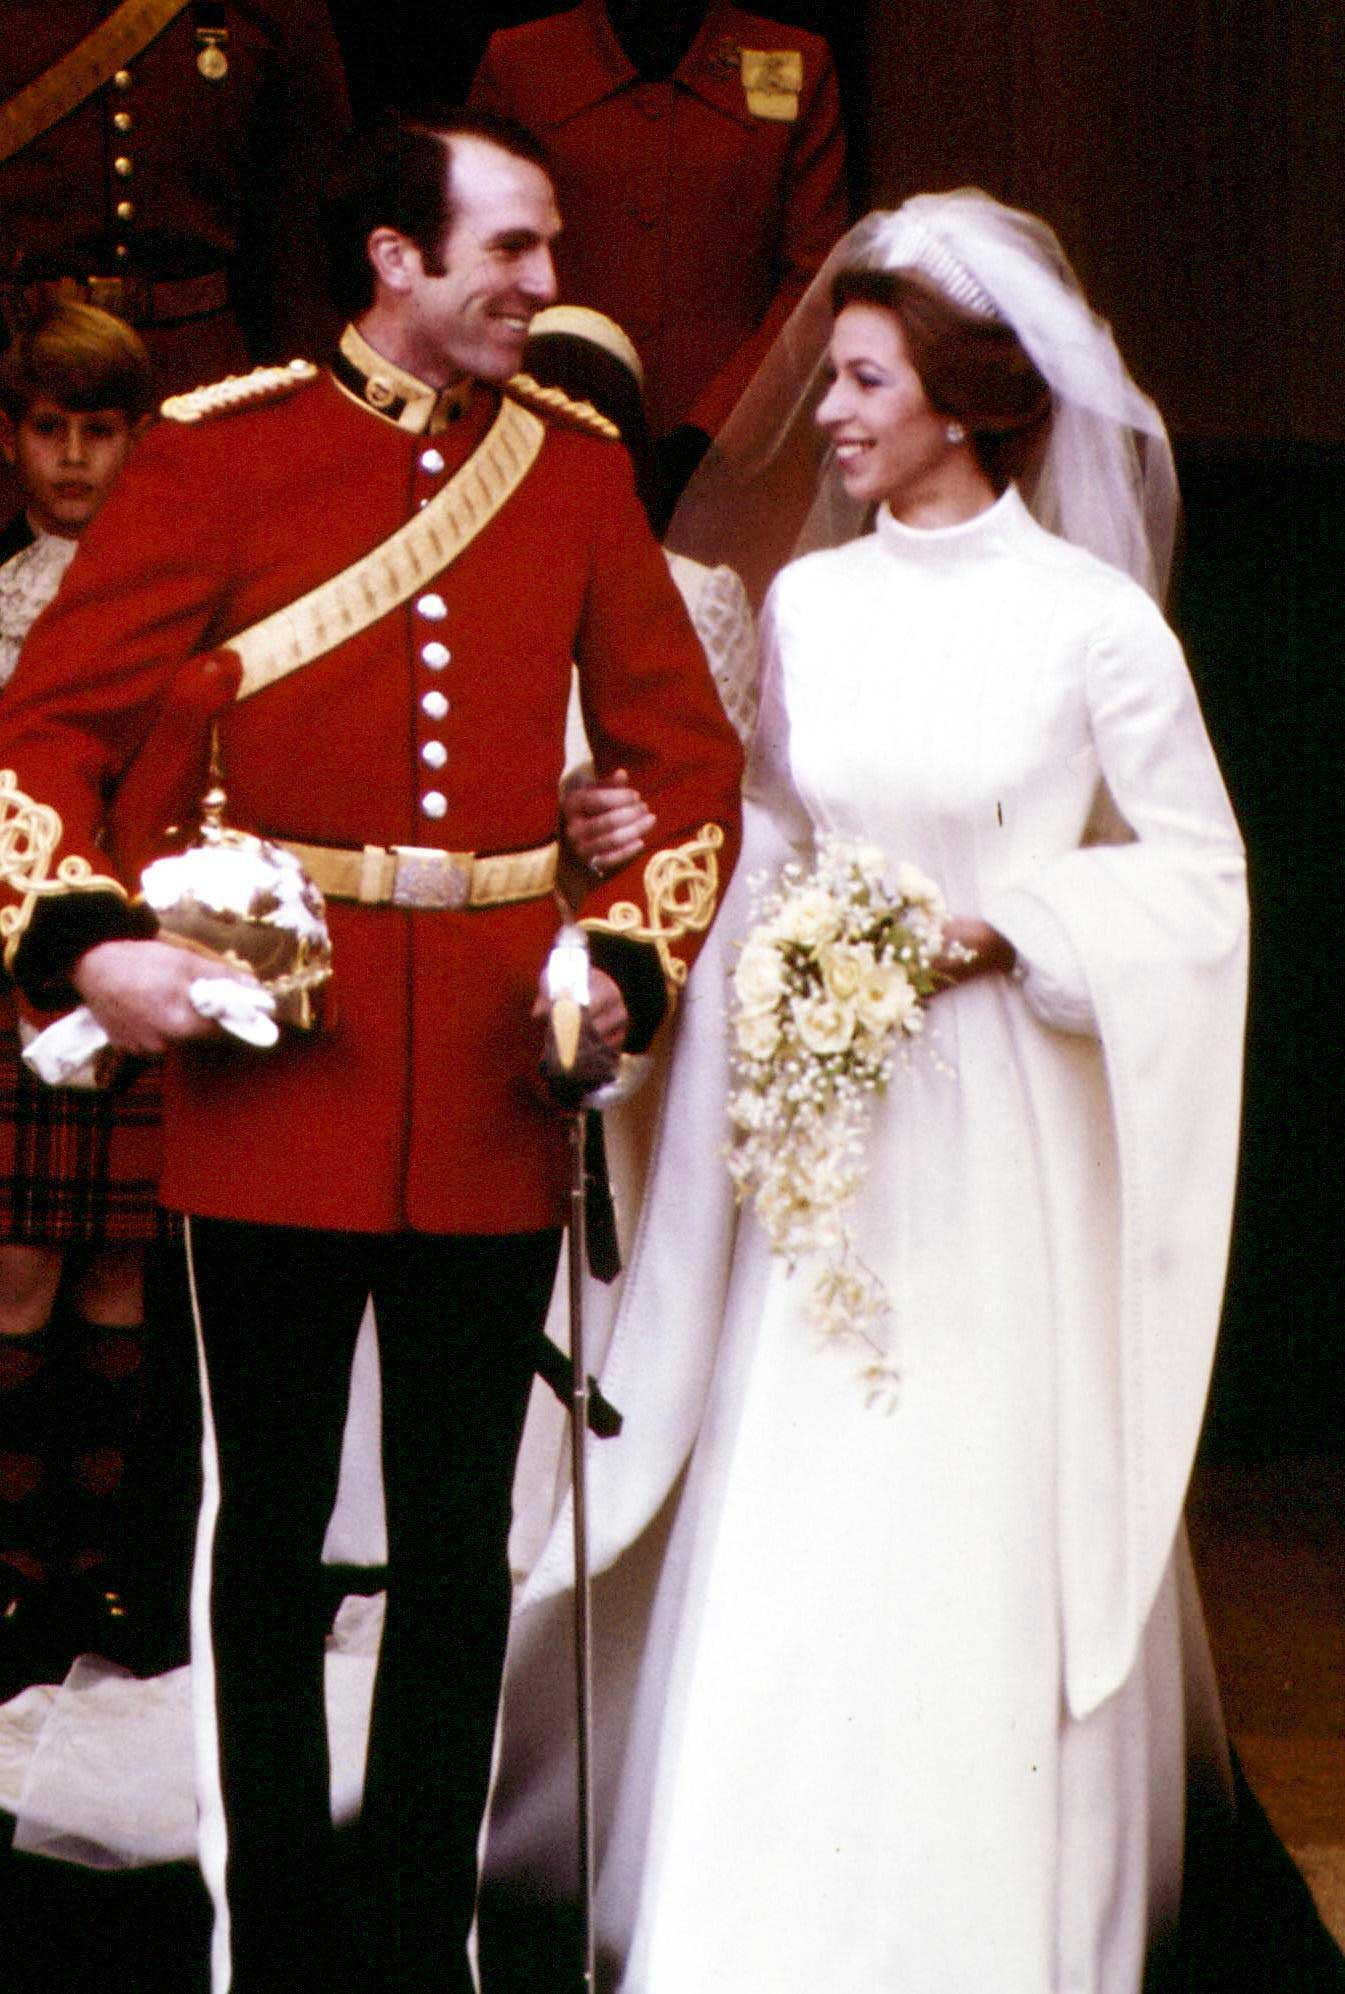 Princess Anne and Captain Mark Phillips leaving the west door of Westminster Abbey in London, after their wedding ceremony, Nov. 14, 1973.